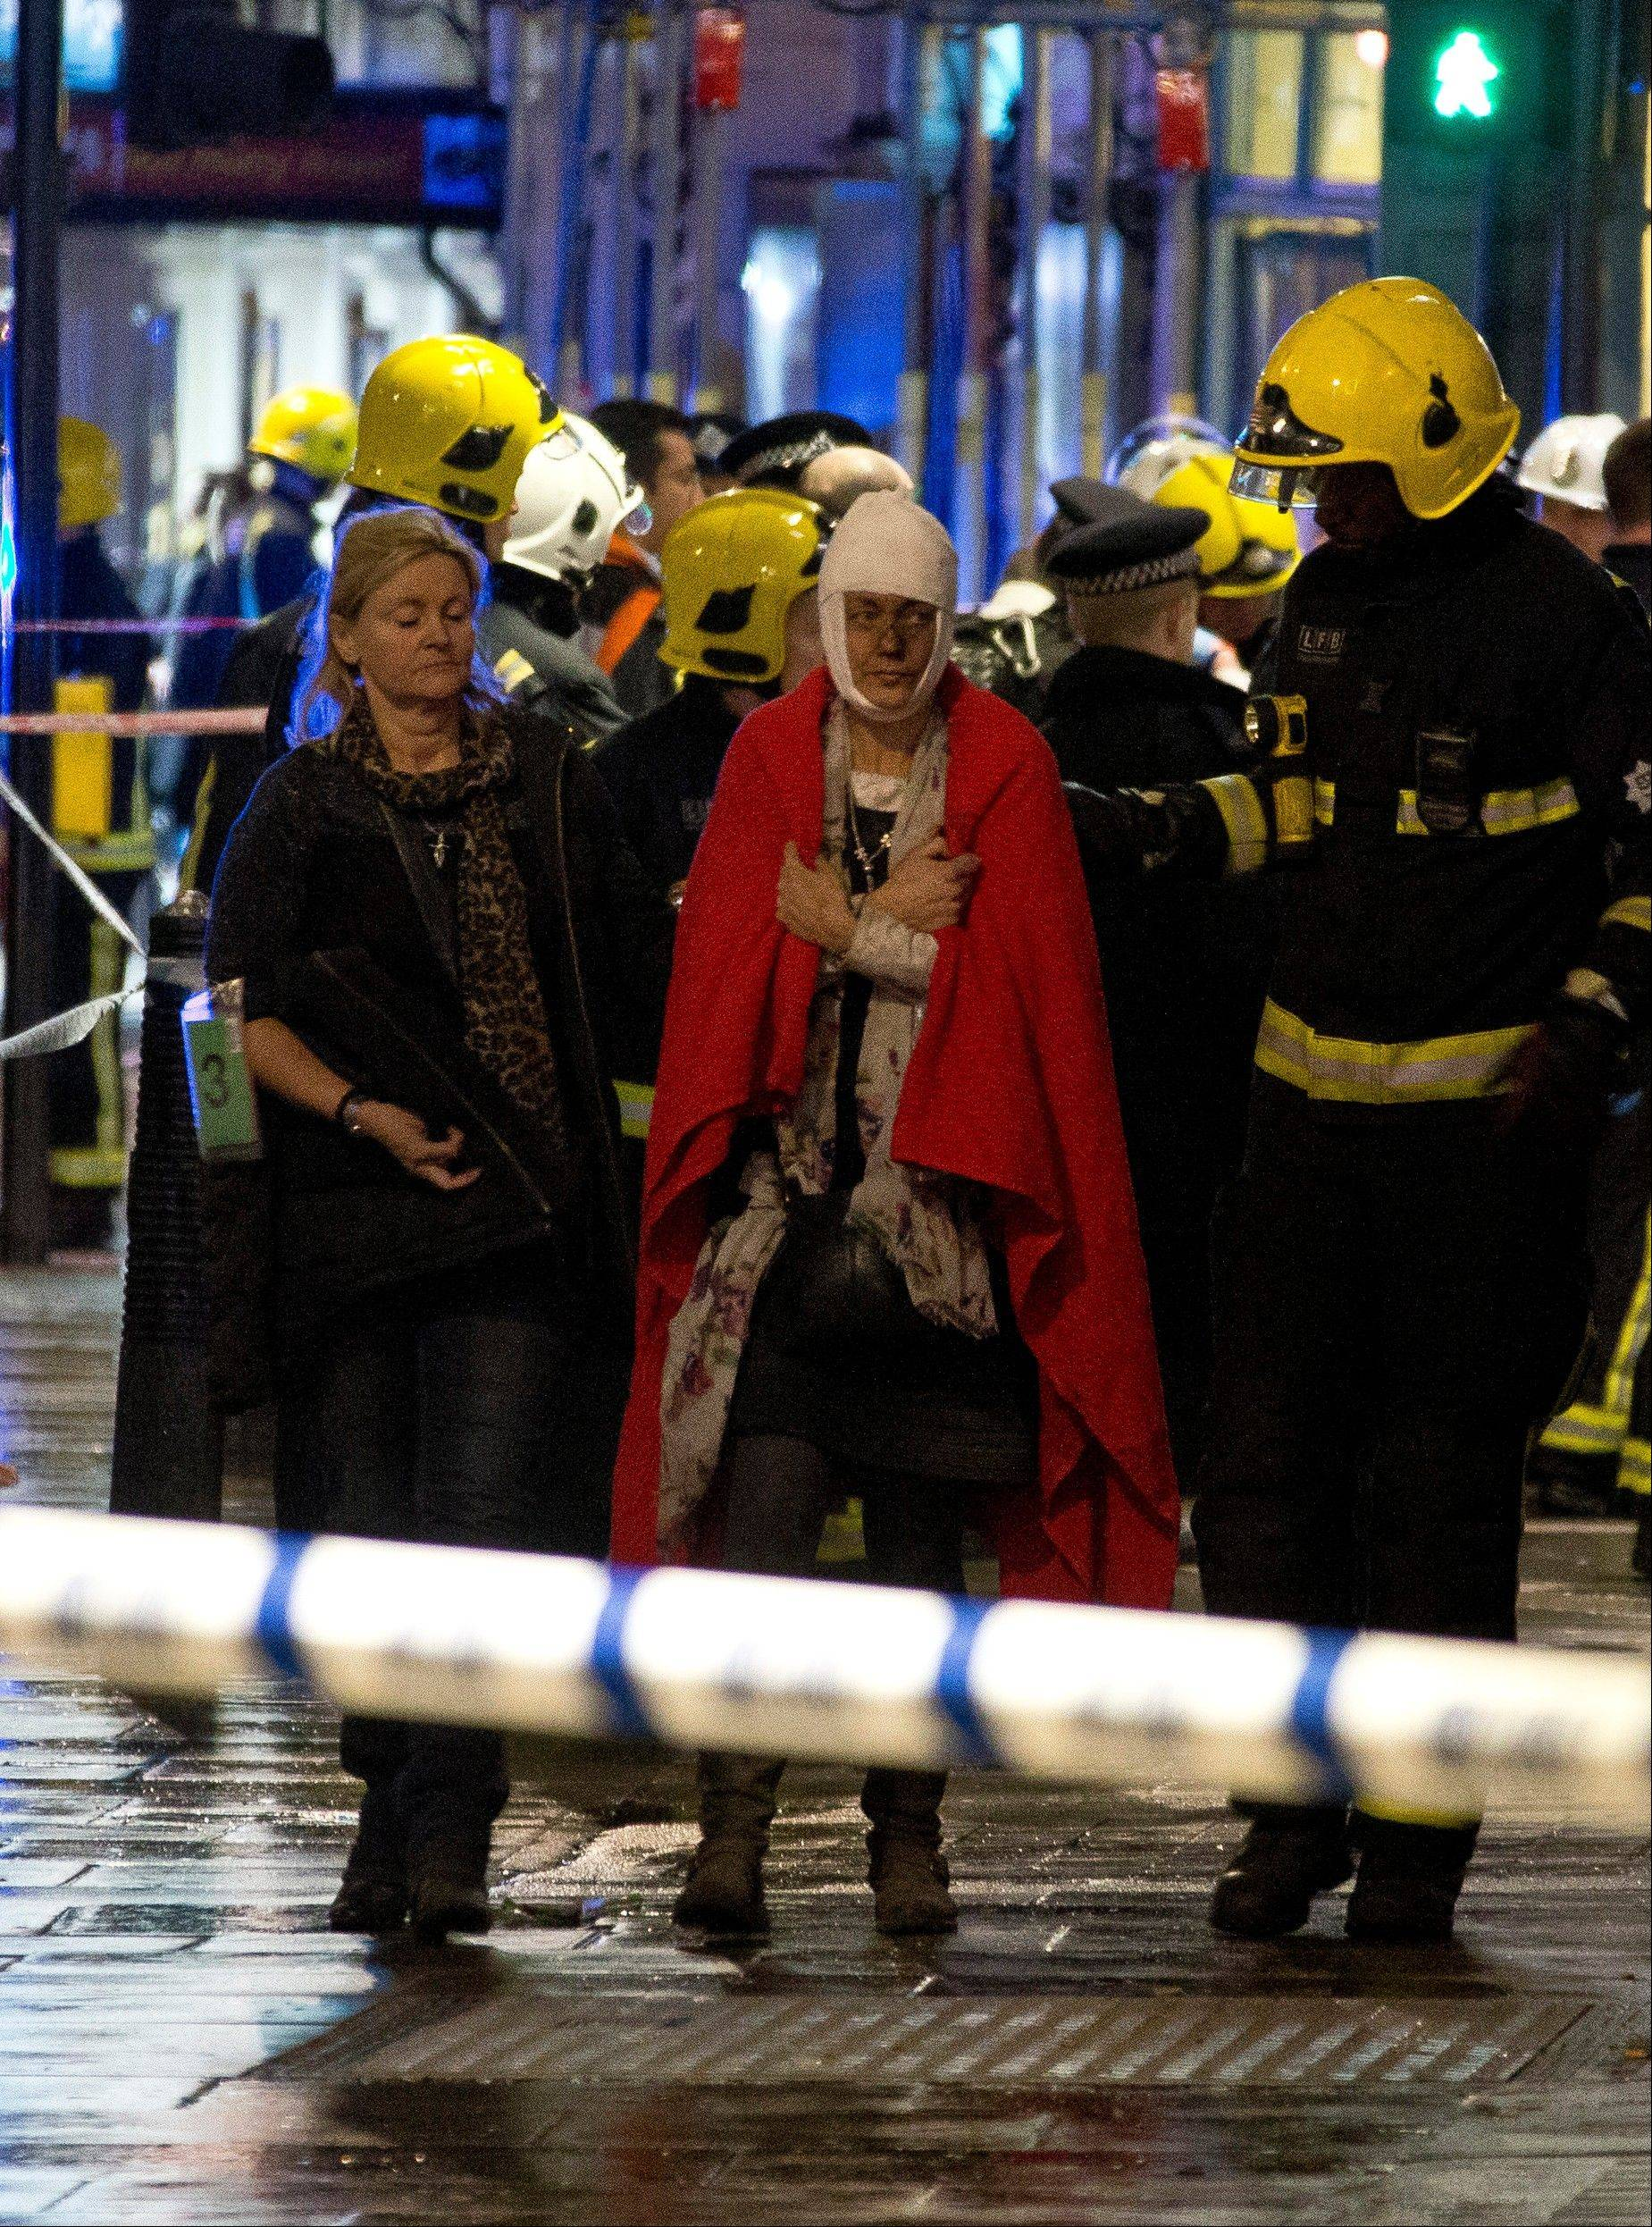 A woman walks, bandaged and wearing a blanket given by emergency services, after a theater in London partially collapsed Thursday evening.